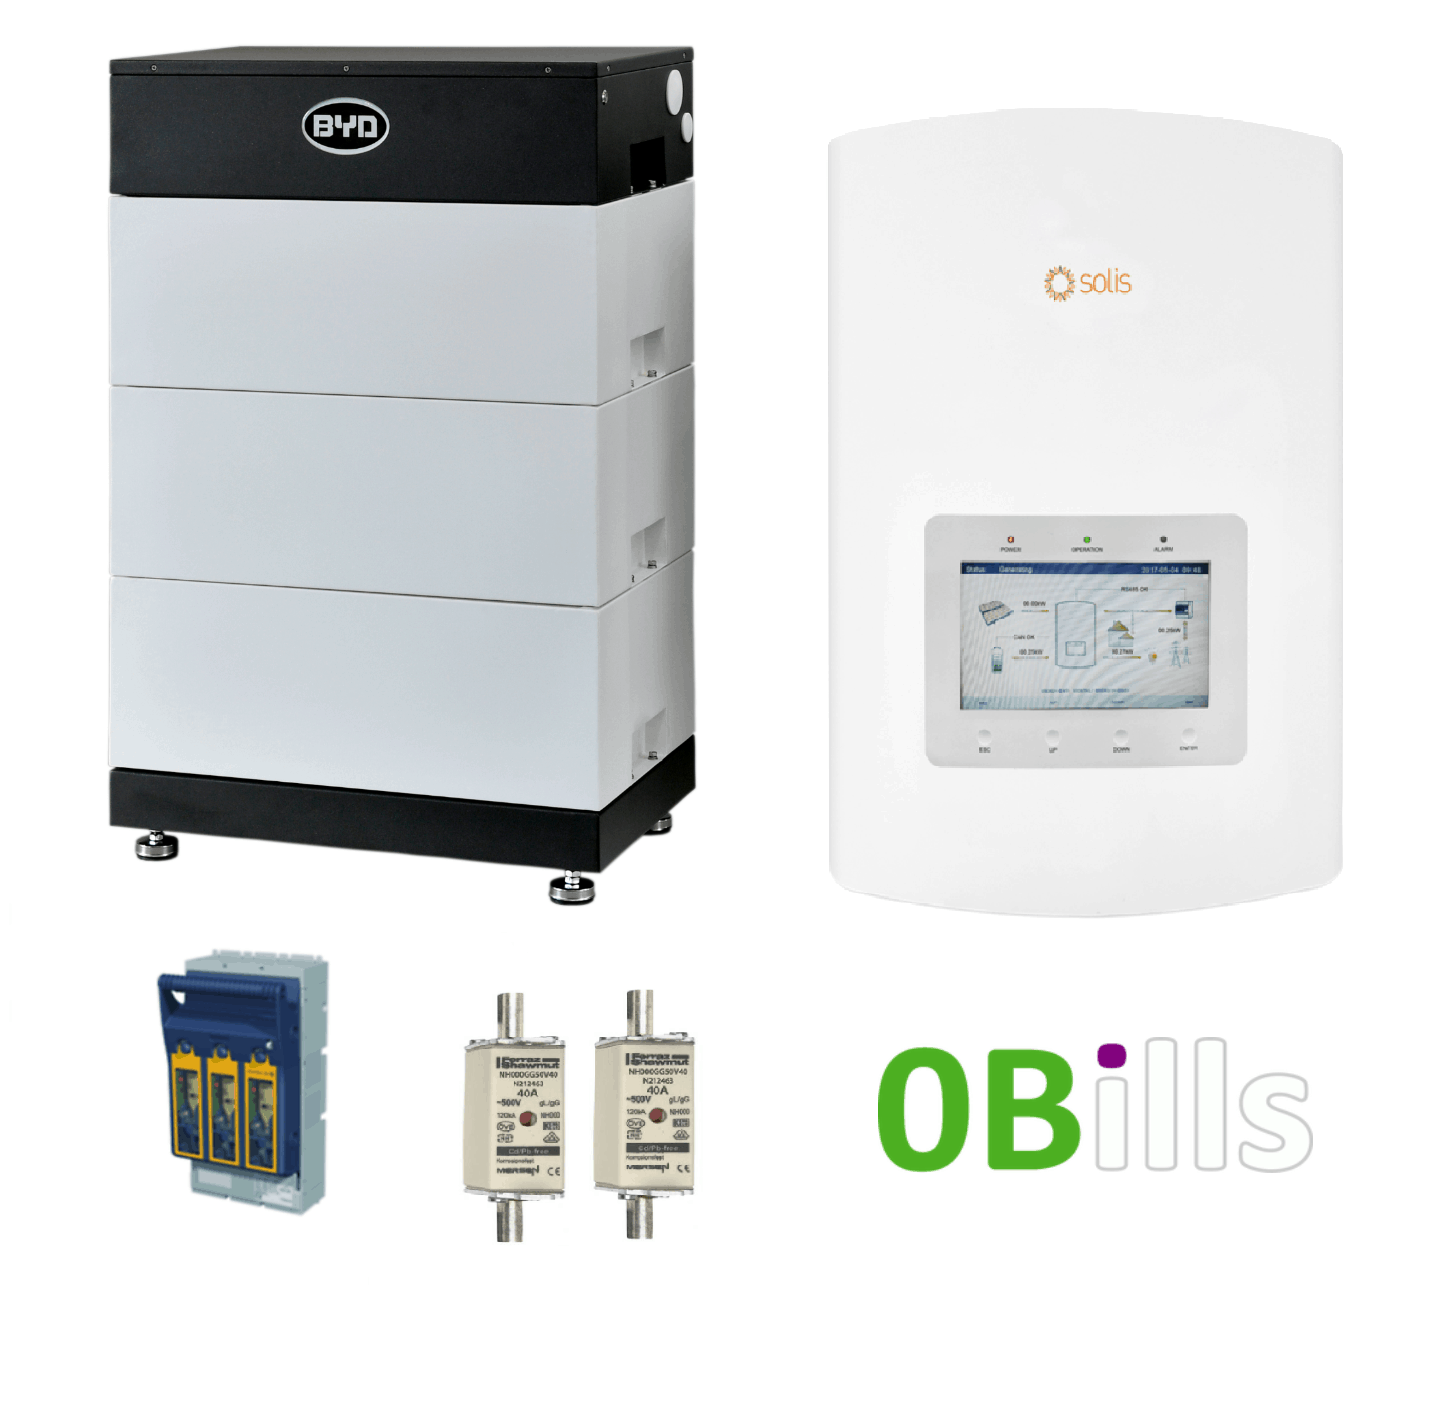 Solis Hybrid 5kw With Byd B Box L 10 5kw Solar Battery Storage Kit In 2020 Solar Battery Storage Kits Battery Storage